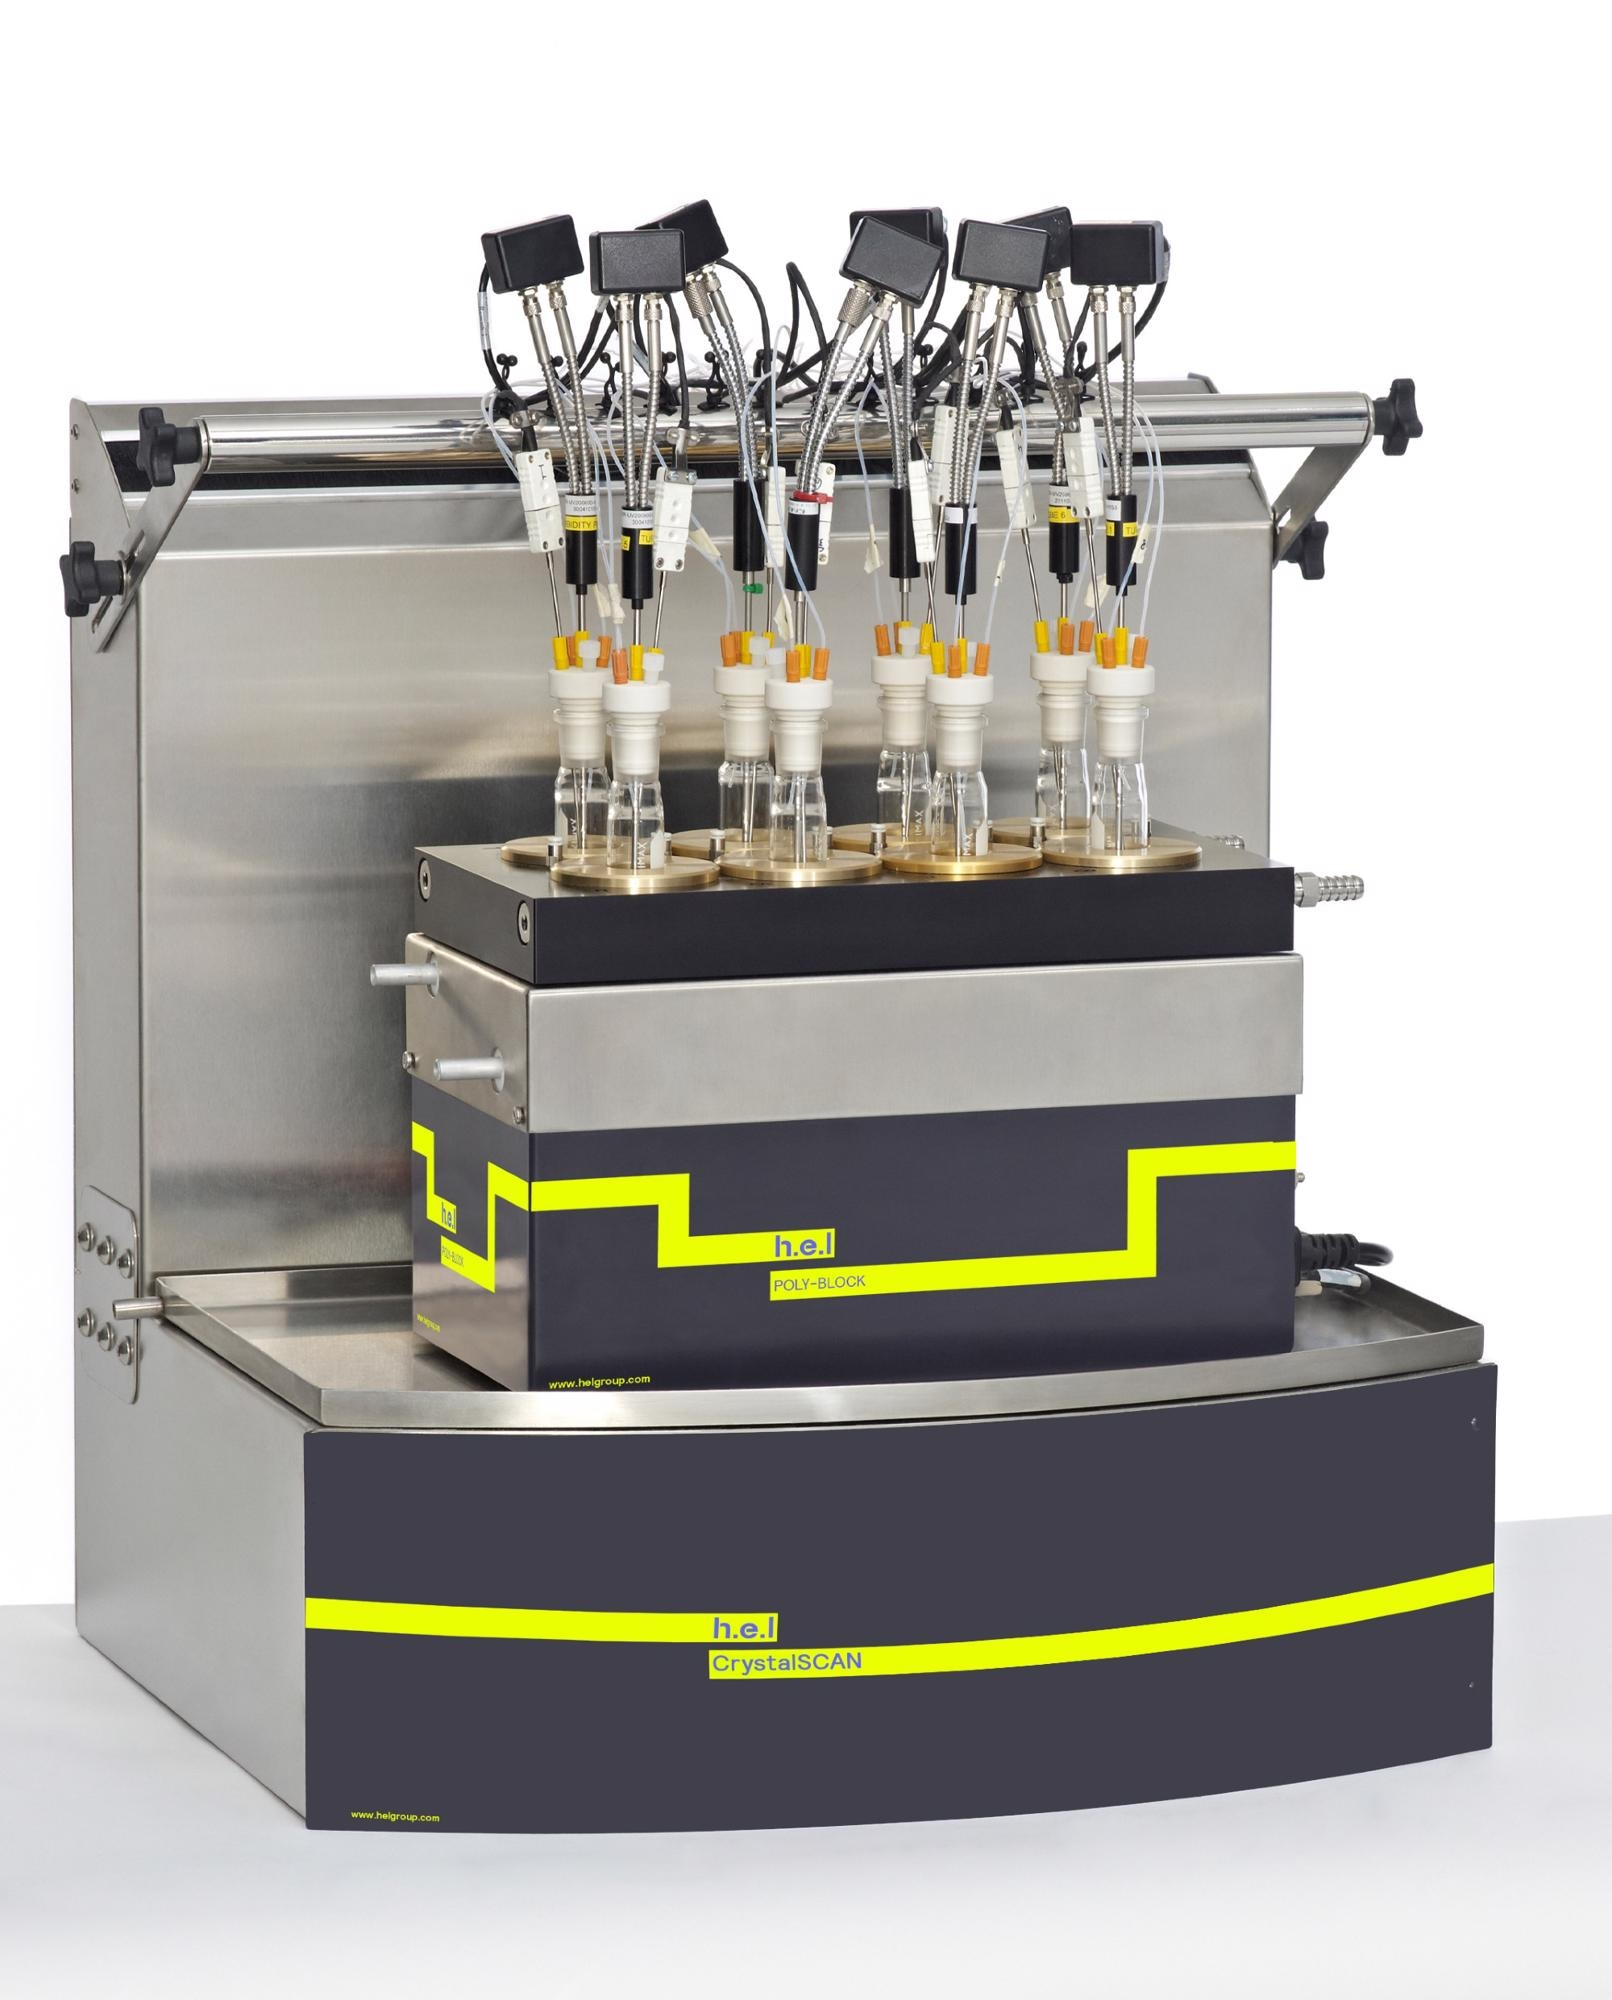 CrystalSCAN: Benchtop, Automated Parallel Crystallization Monitoring Platform